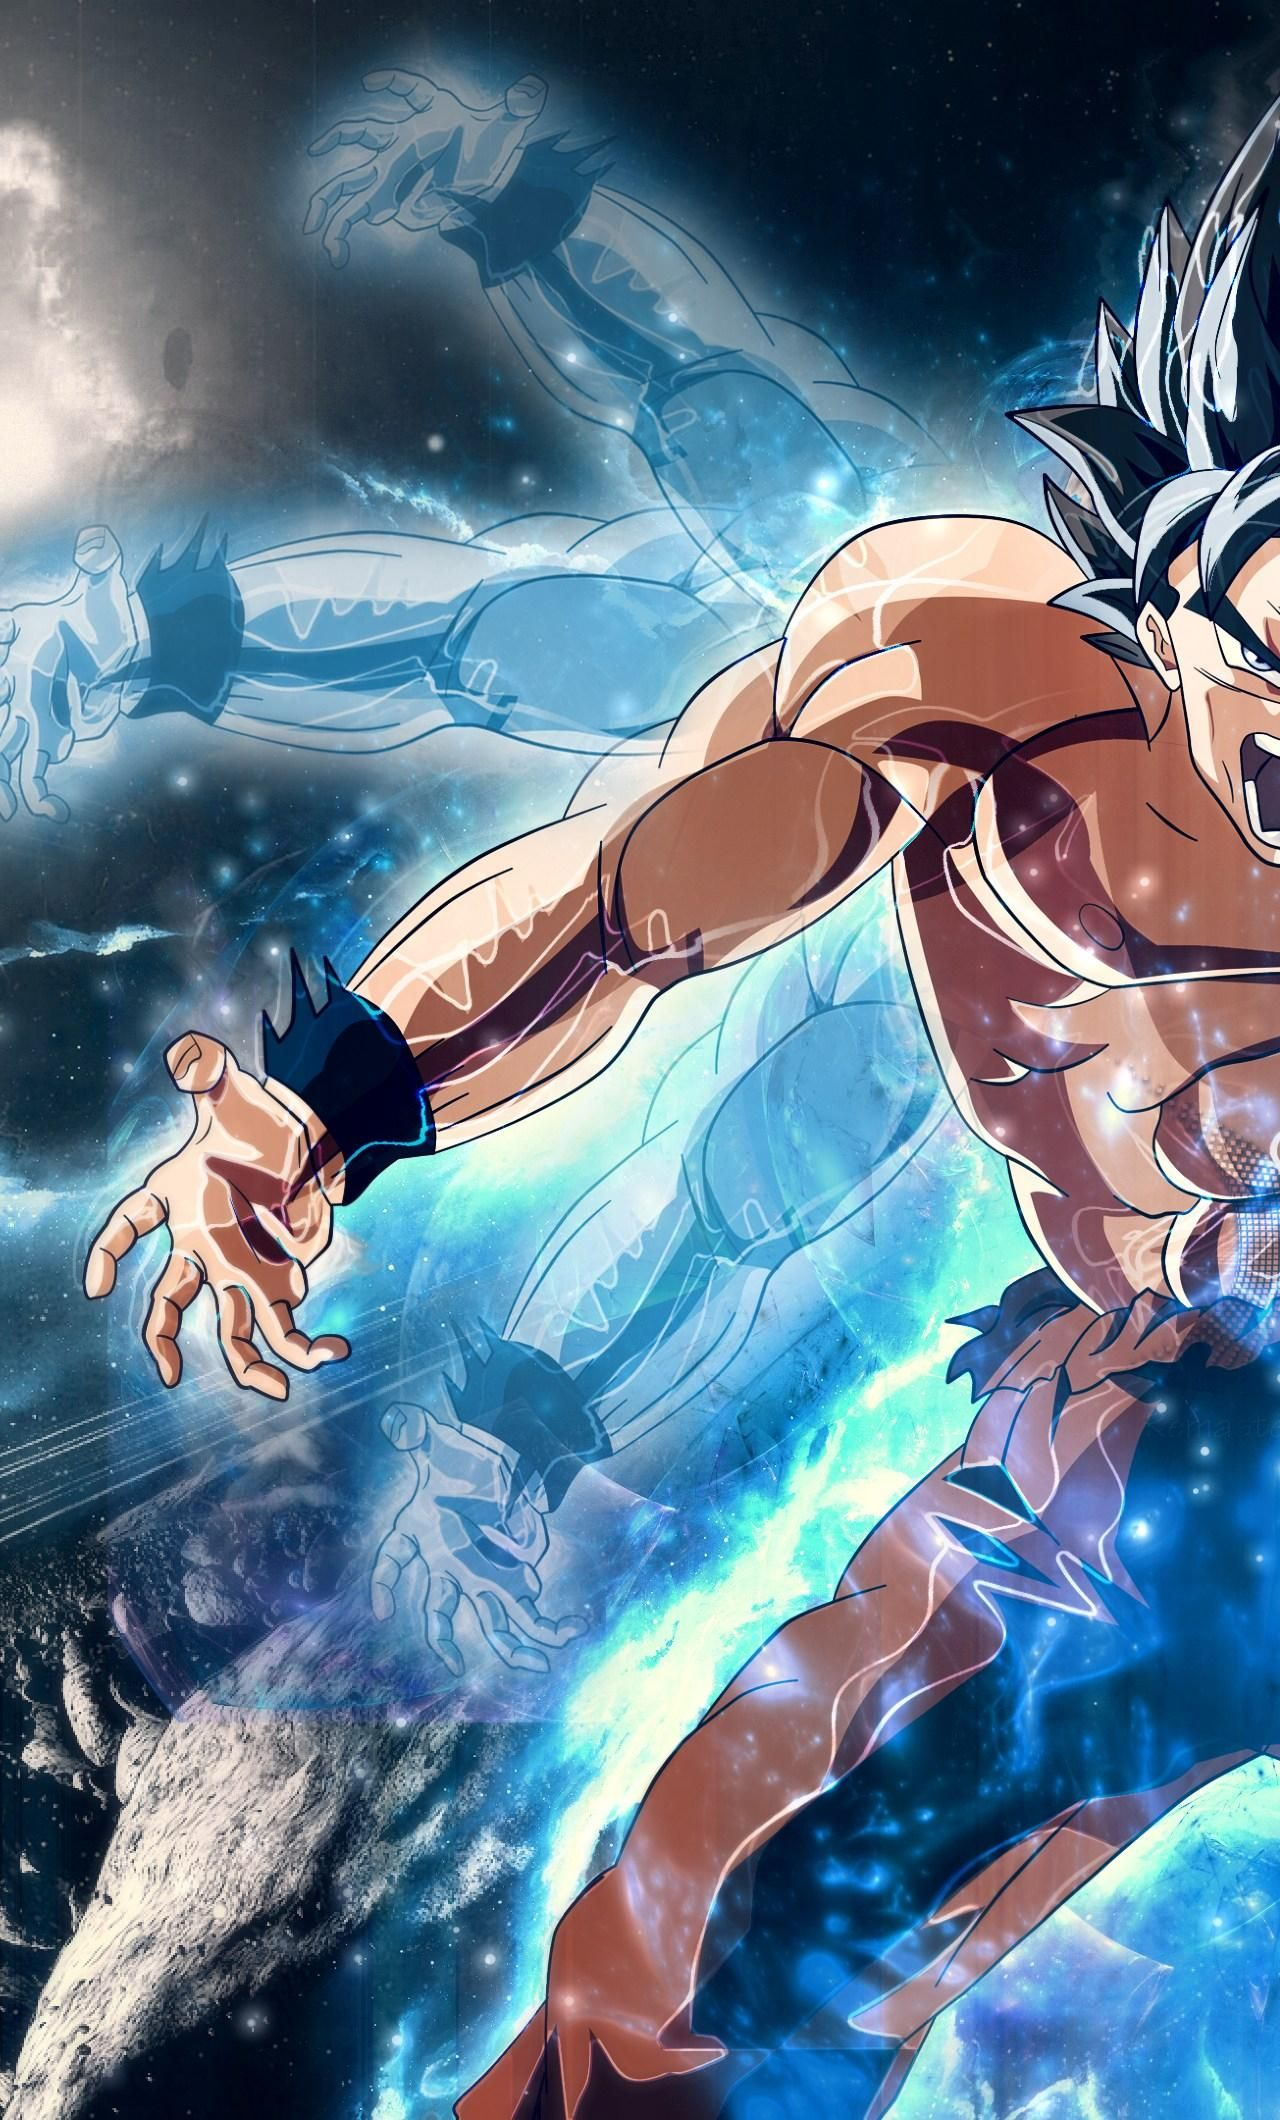 Dbz Live Wallpaper Group (44+) Dragon ball super